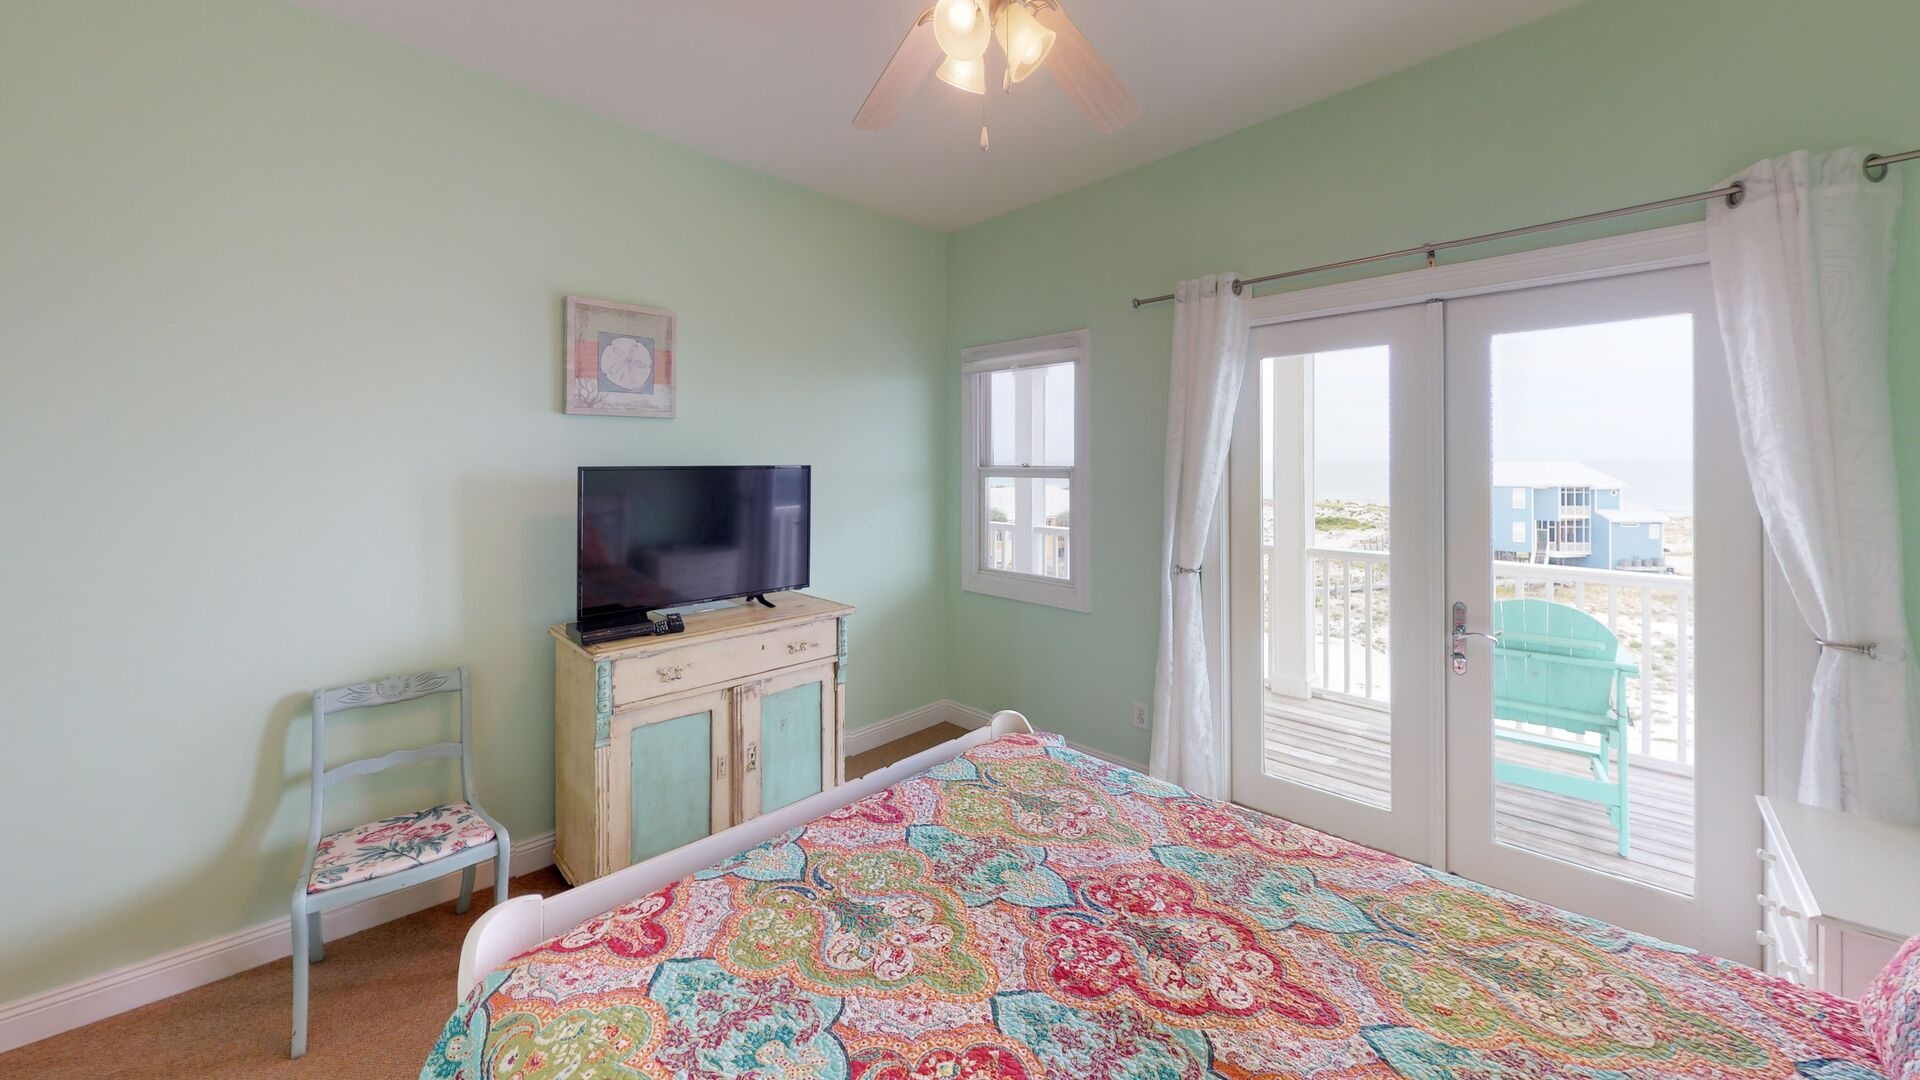 Bedroom Features TV and Outdoor Deck Access.